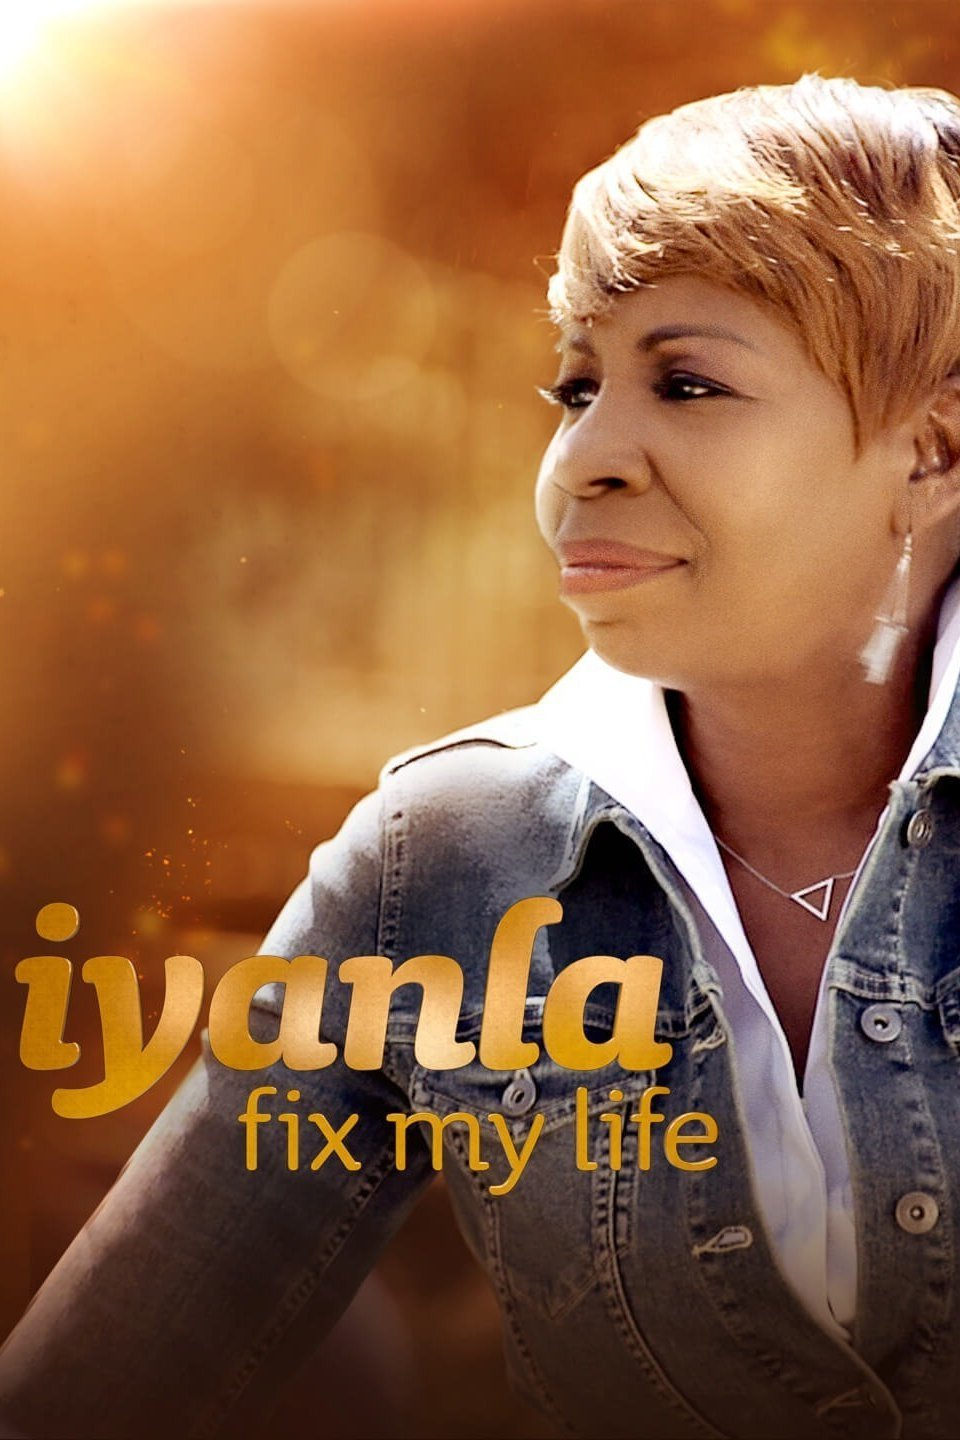 Iyanla, Fix My Life Season 7 123movies